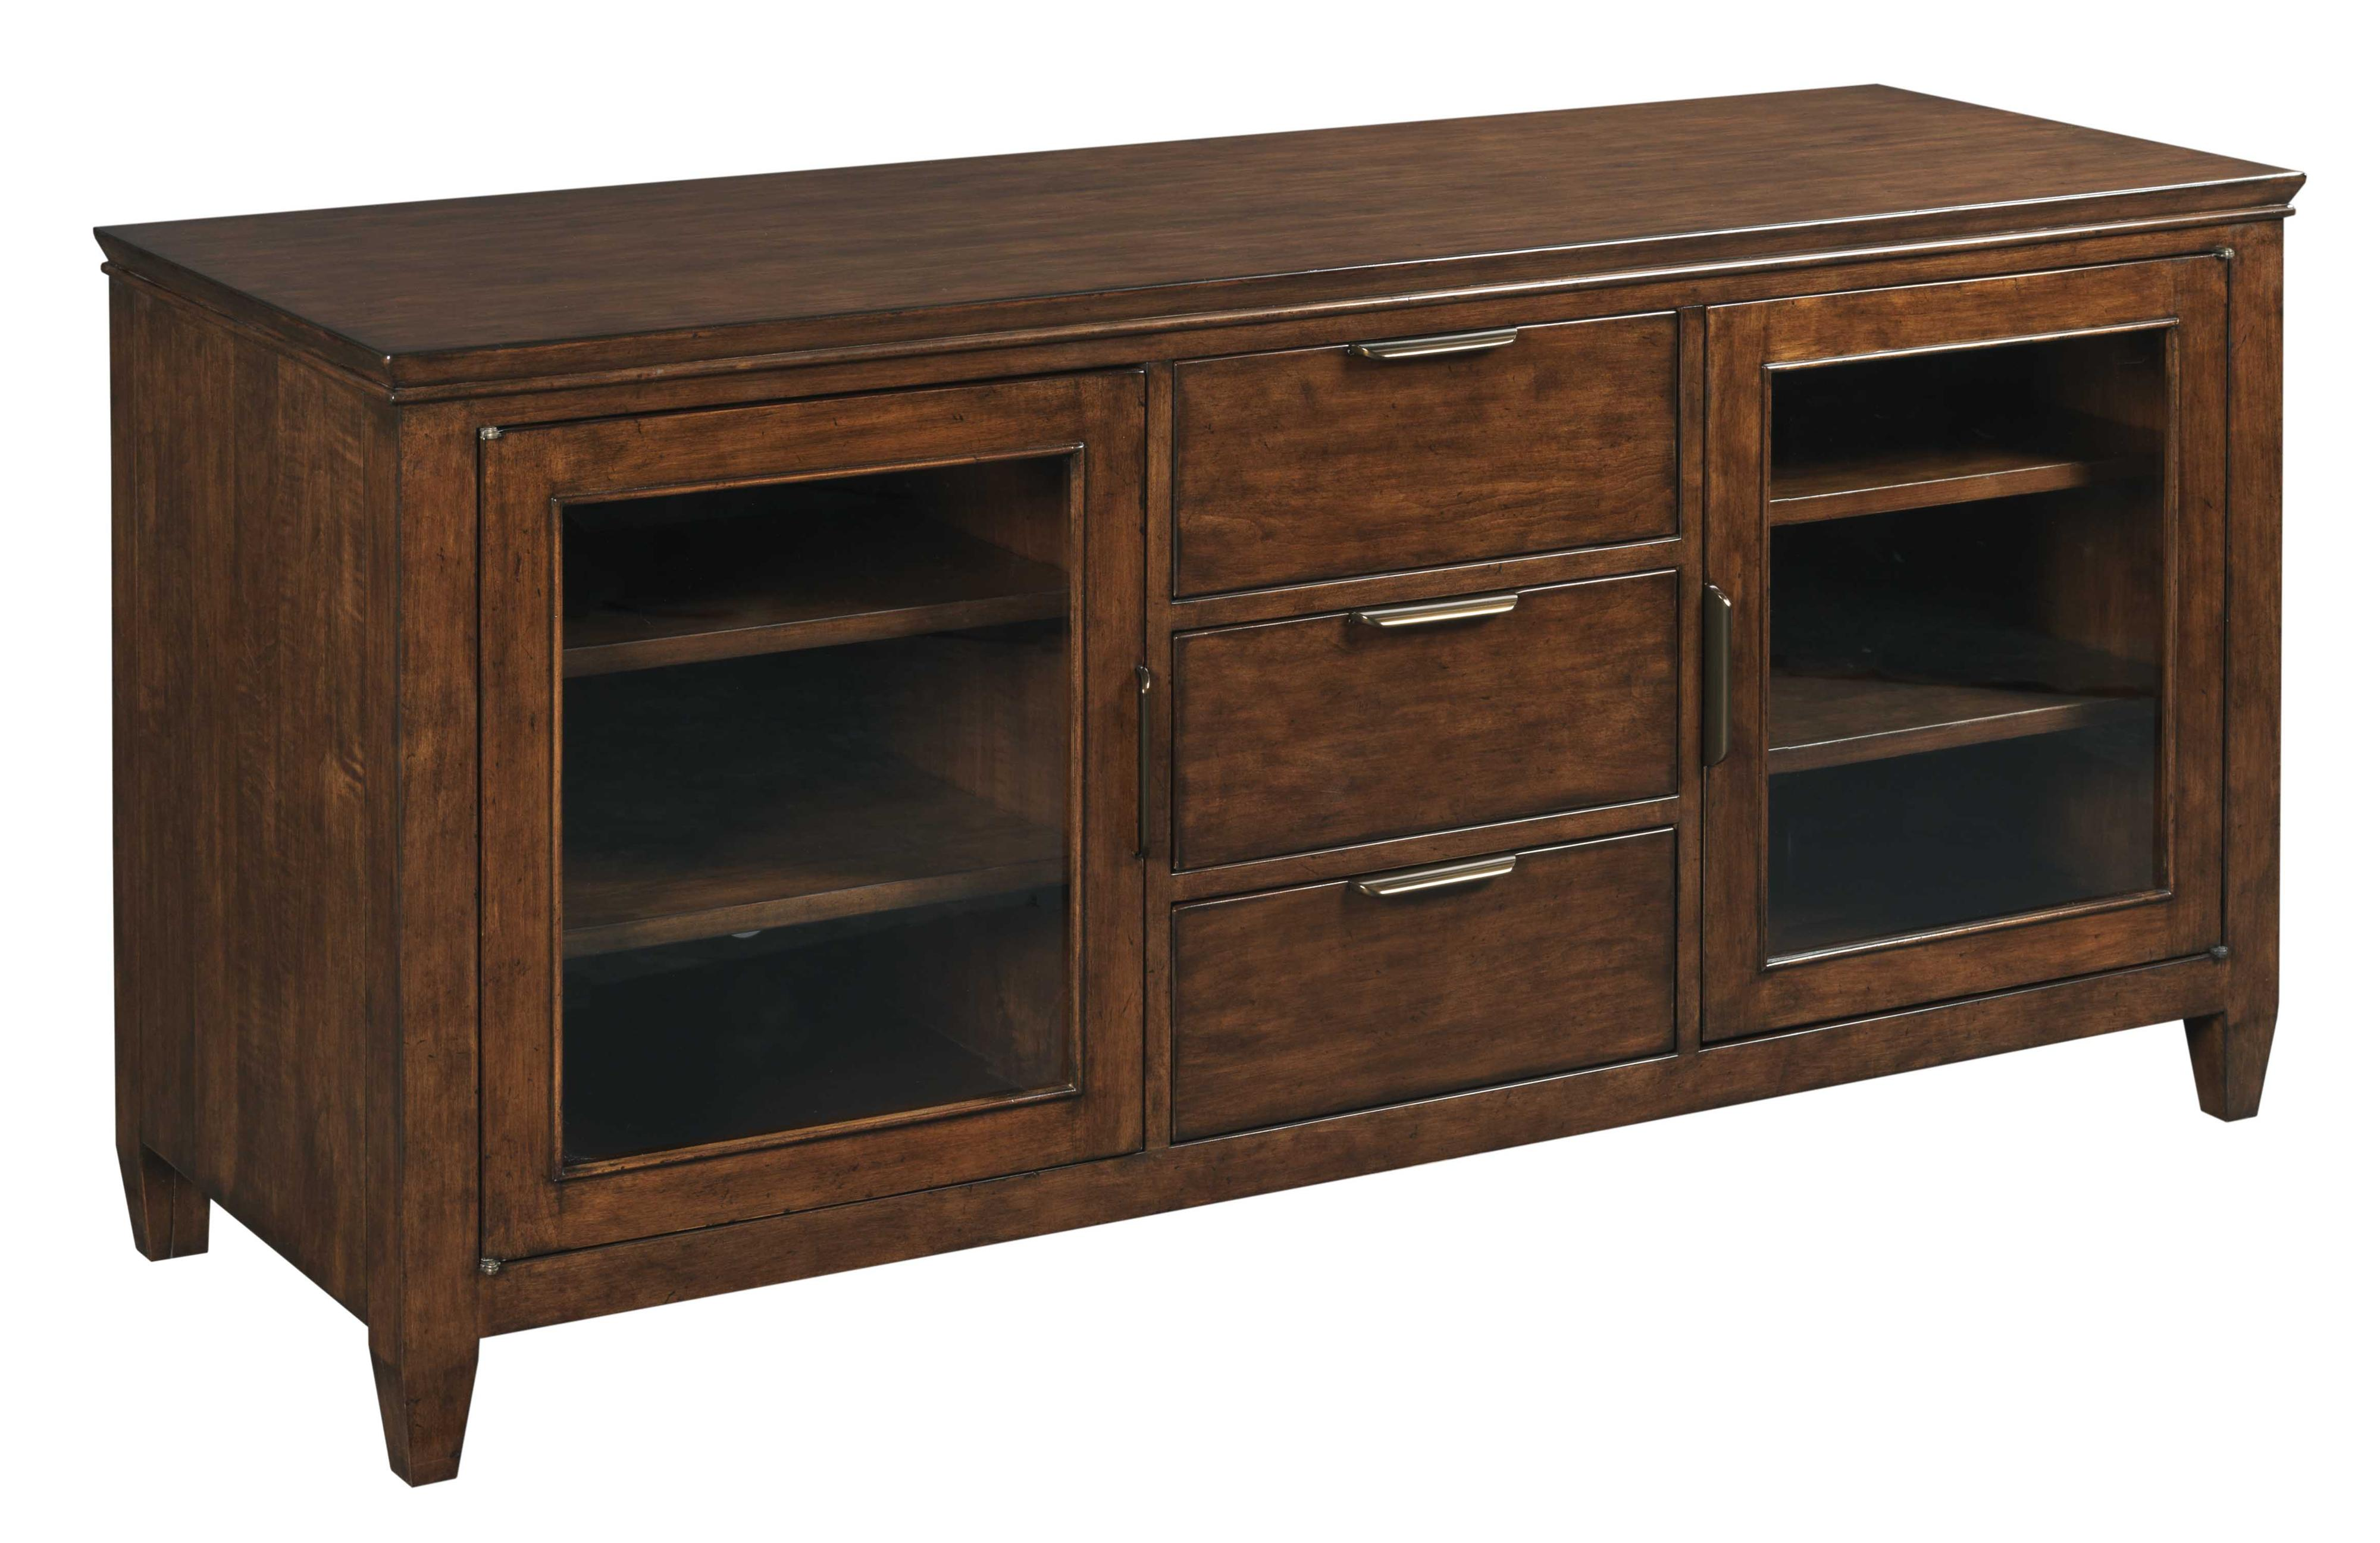 """Elise Accord 58"""" Console by Kincaid Furniture at Northeast Factory Direct"""